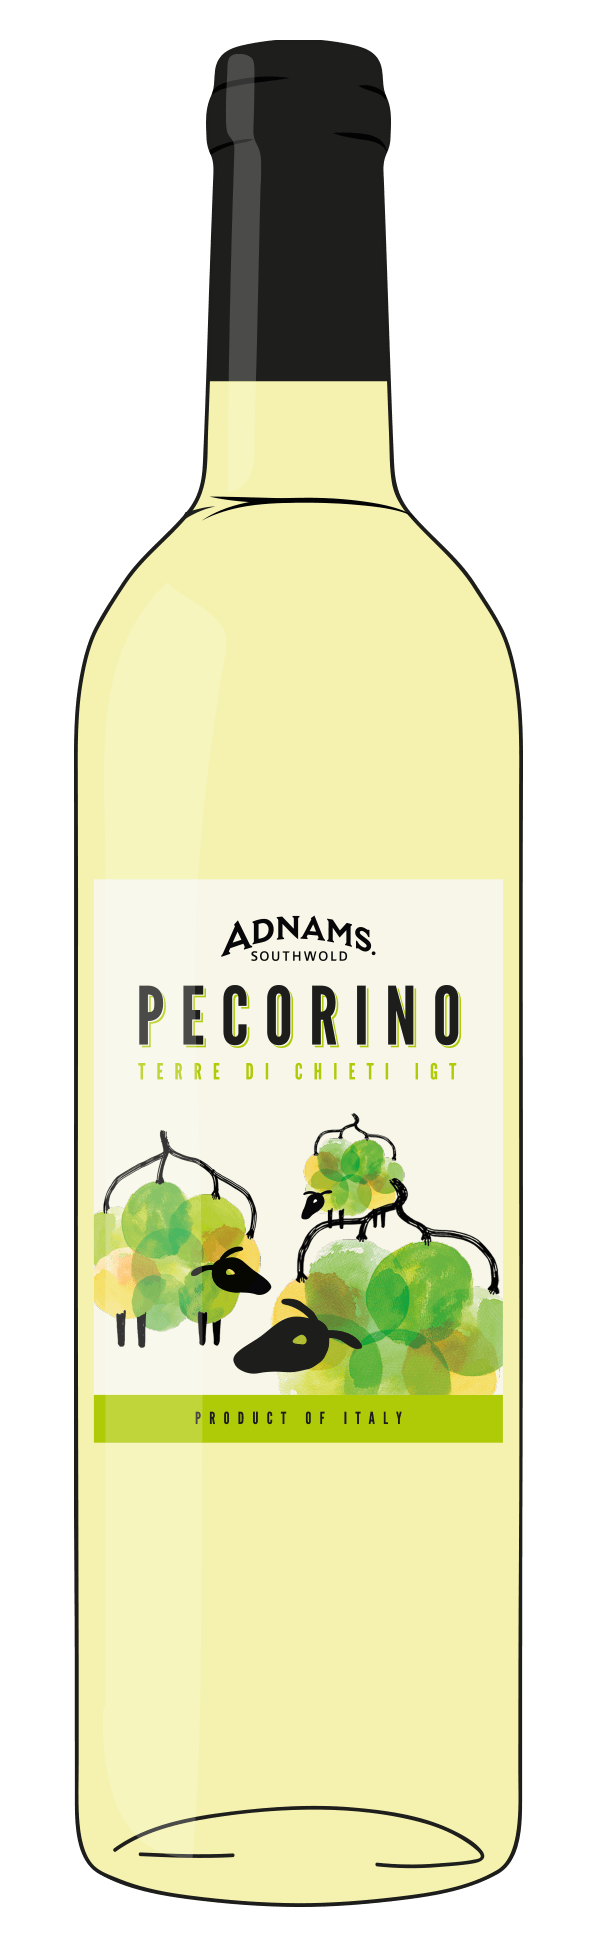 Stockists of Gran Sasso - Alta Pecorino IGT Terre di Chieti 2015 6x 75cl Bottles